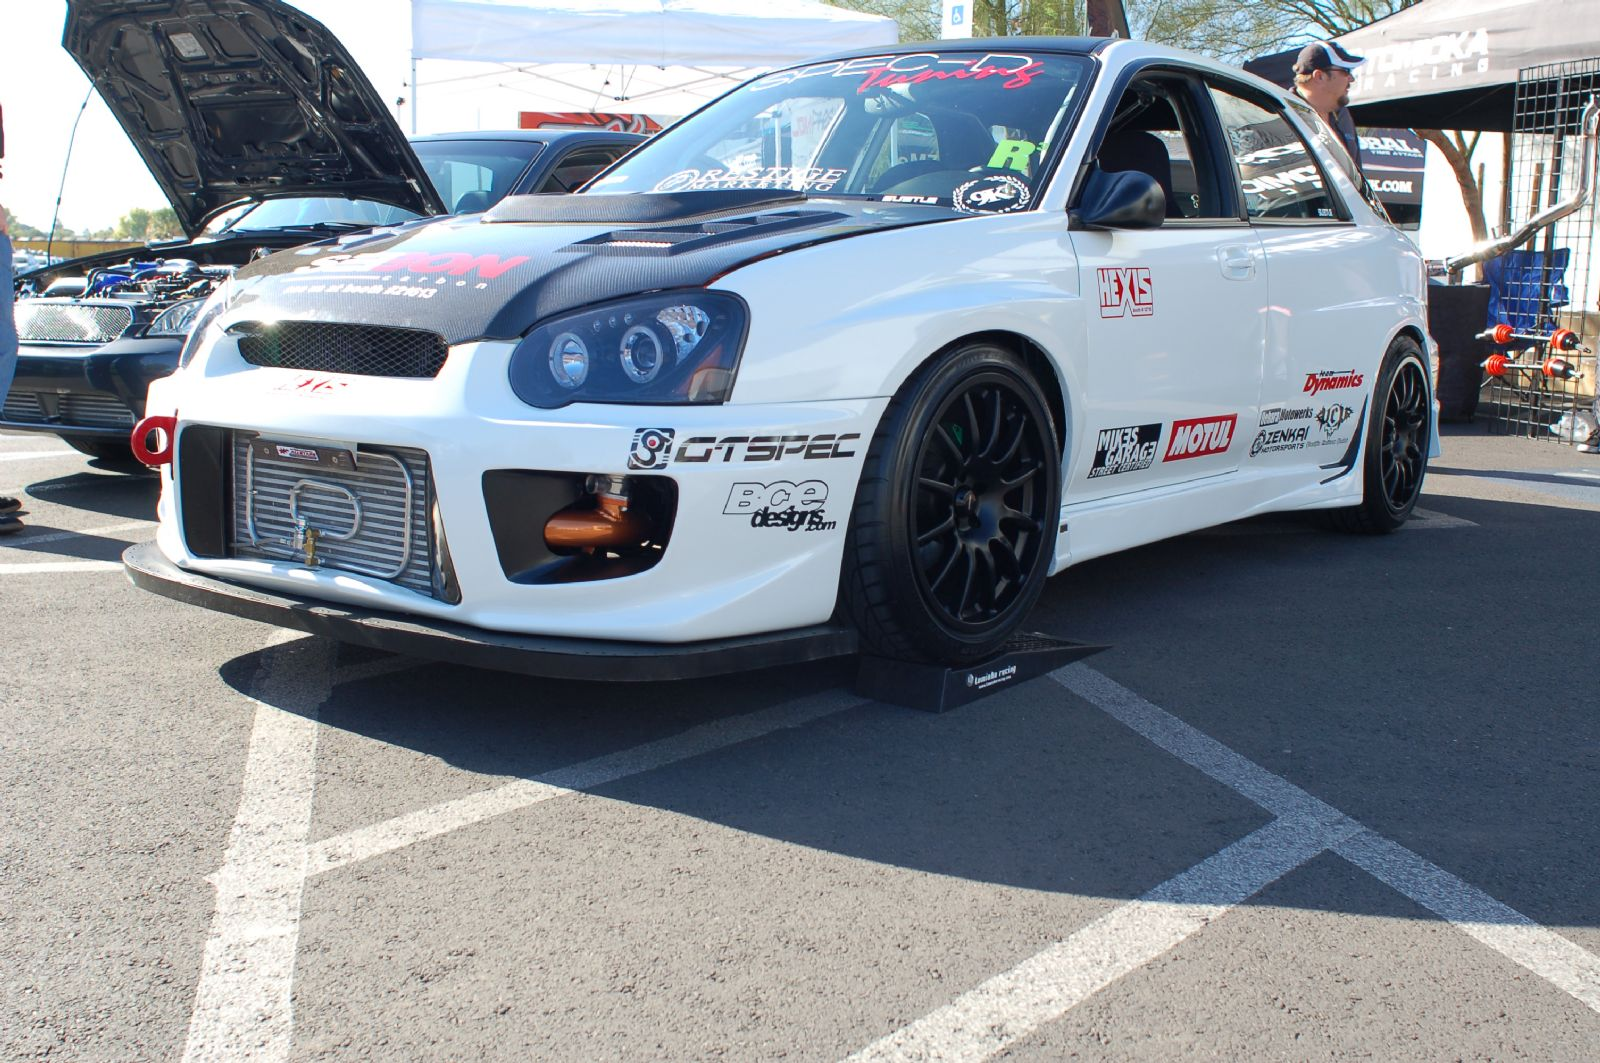 2004 Subaru WRX STI Subaru Turbo [Impreza WRX] WRX For Sale | Nevada ...